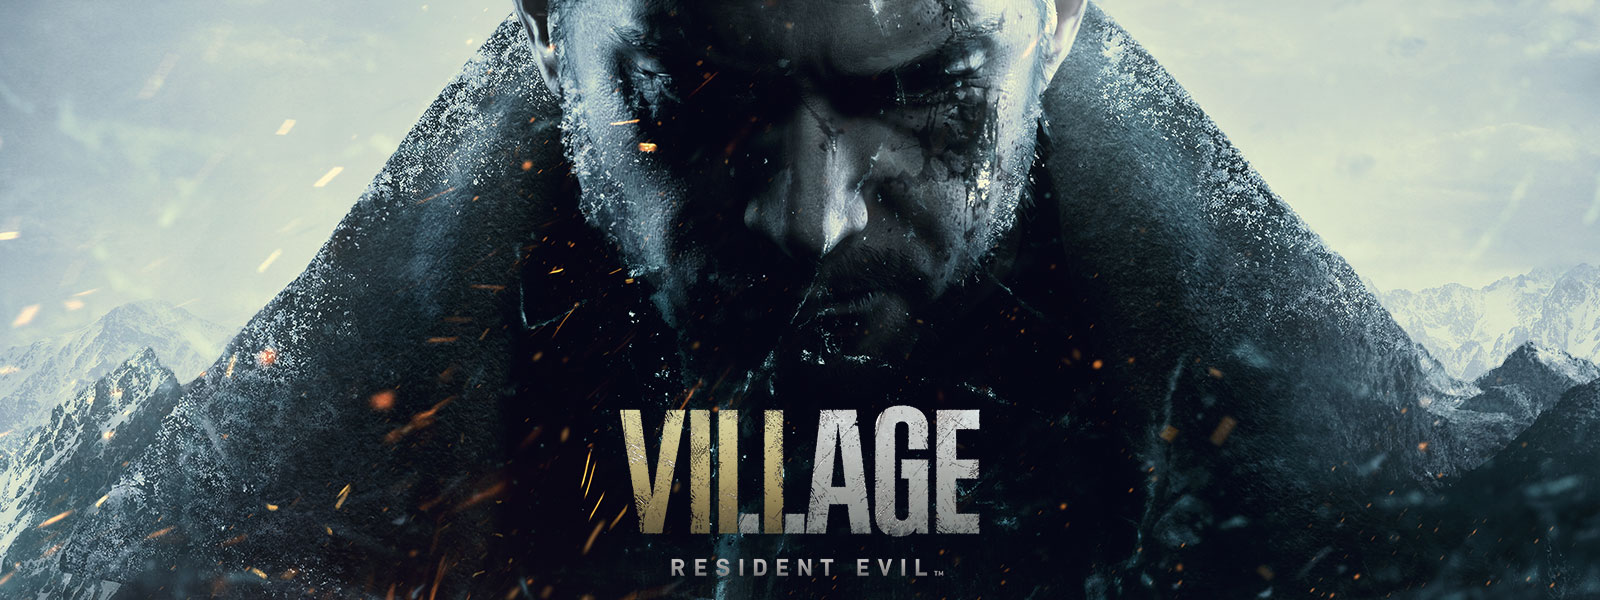 Resident Evil Village, Chris Redfield's sombre face on the side of a mountain